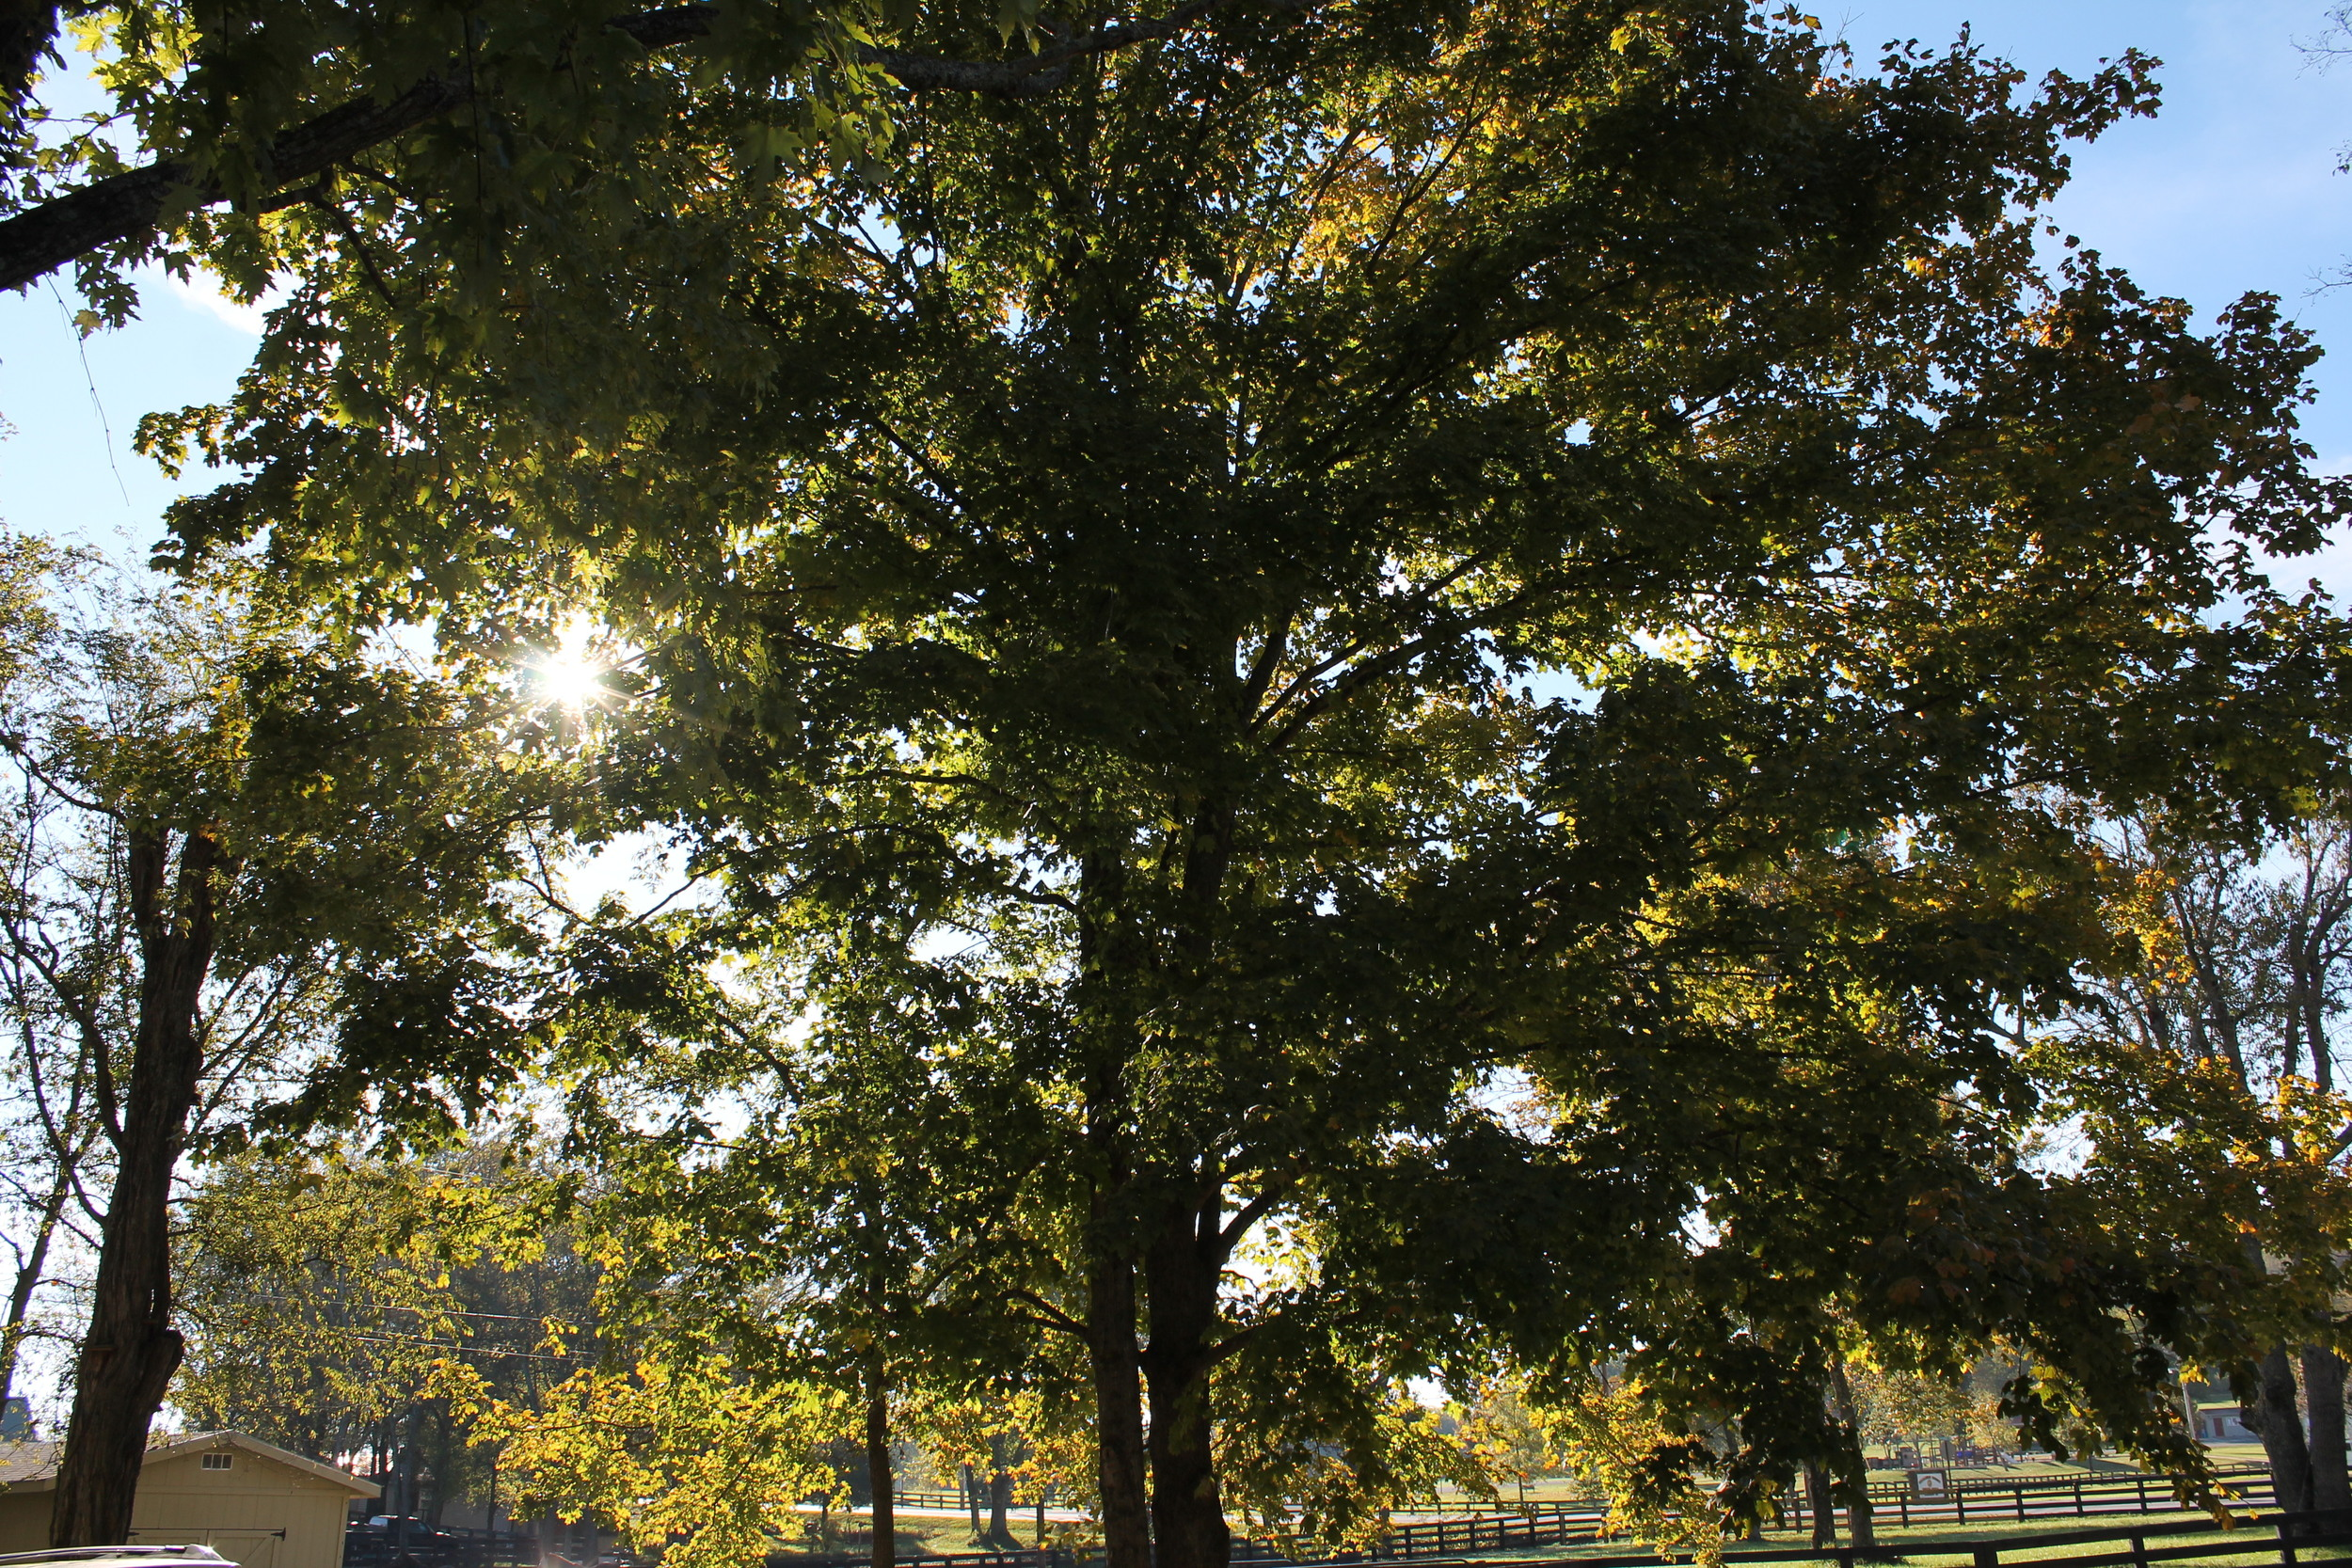 The Town of Thompson's Station is truly a beautiful place in the fall. The Allenwood Development Team hopes to preserve as many of the property's trees as possible, adding to both the privacy of the residents and natural beauty of the landscape.